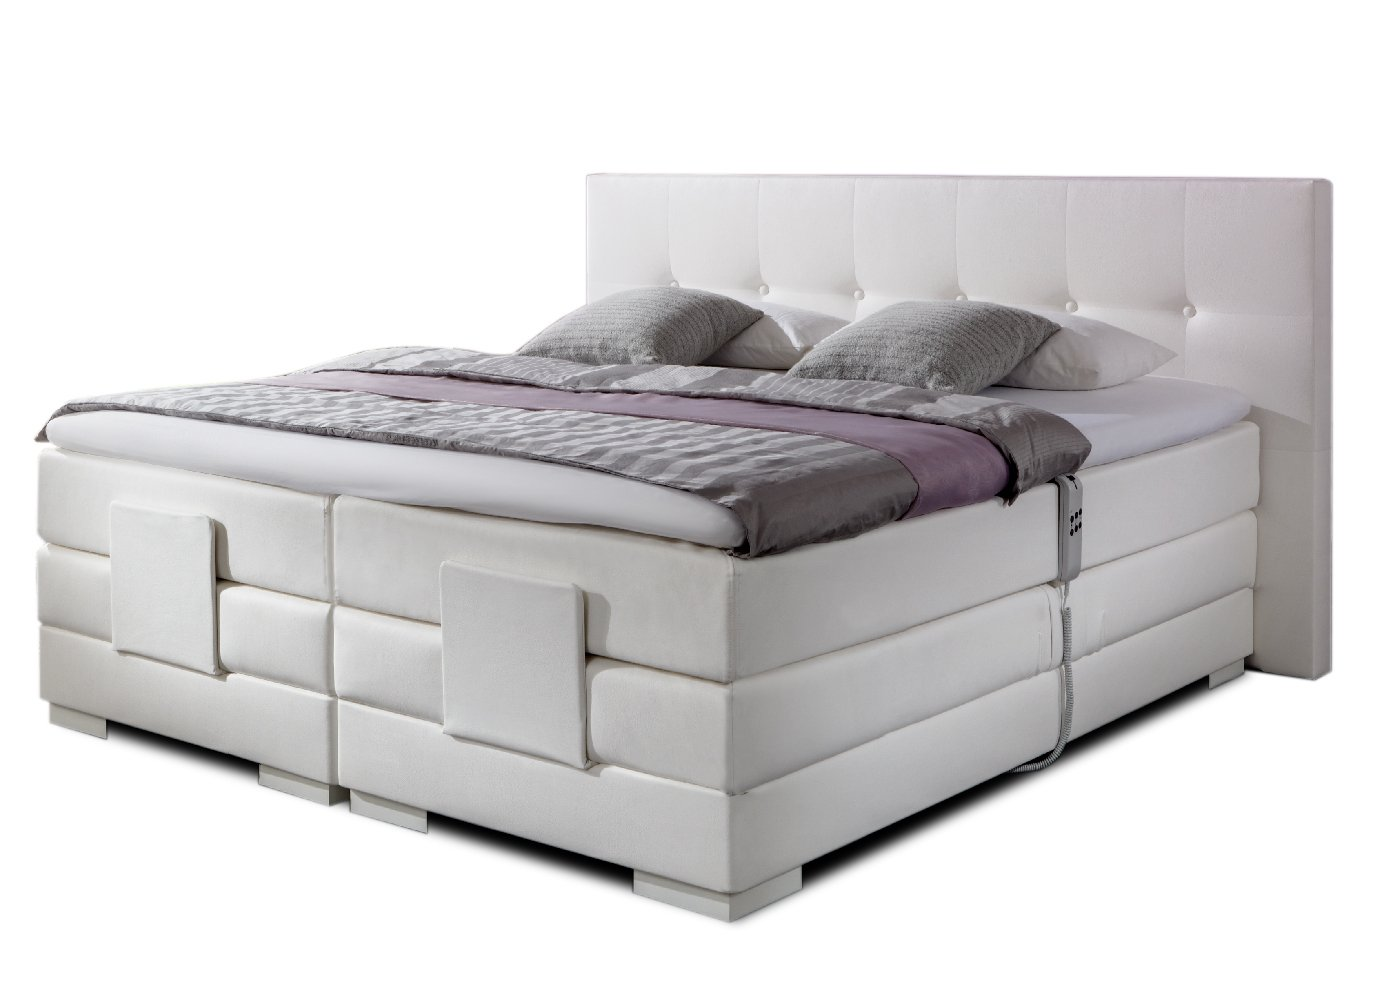 Boxspringbett luxus  Luxus Boxspringbett in weiss elektrisch verstellbar NIZZA in 30 ...